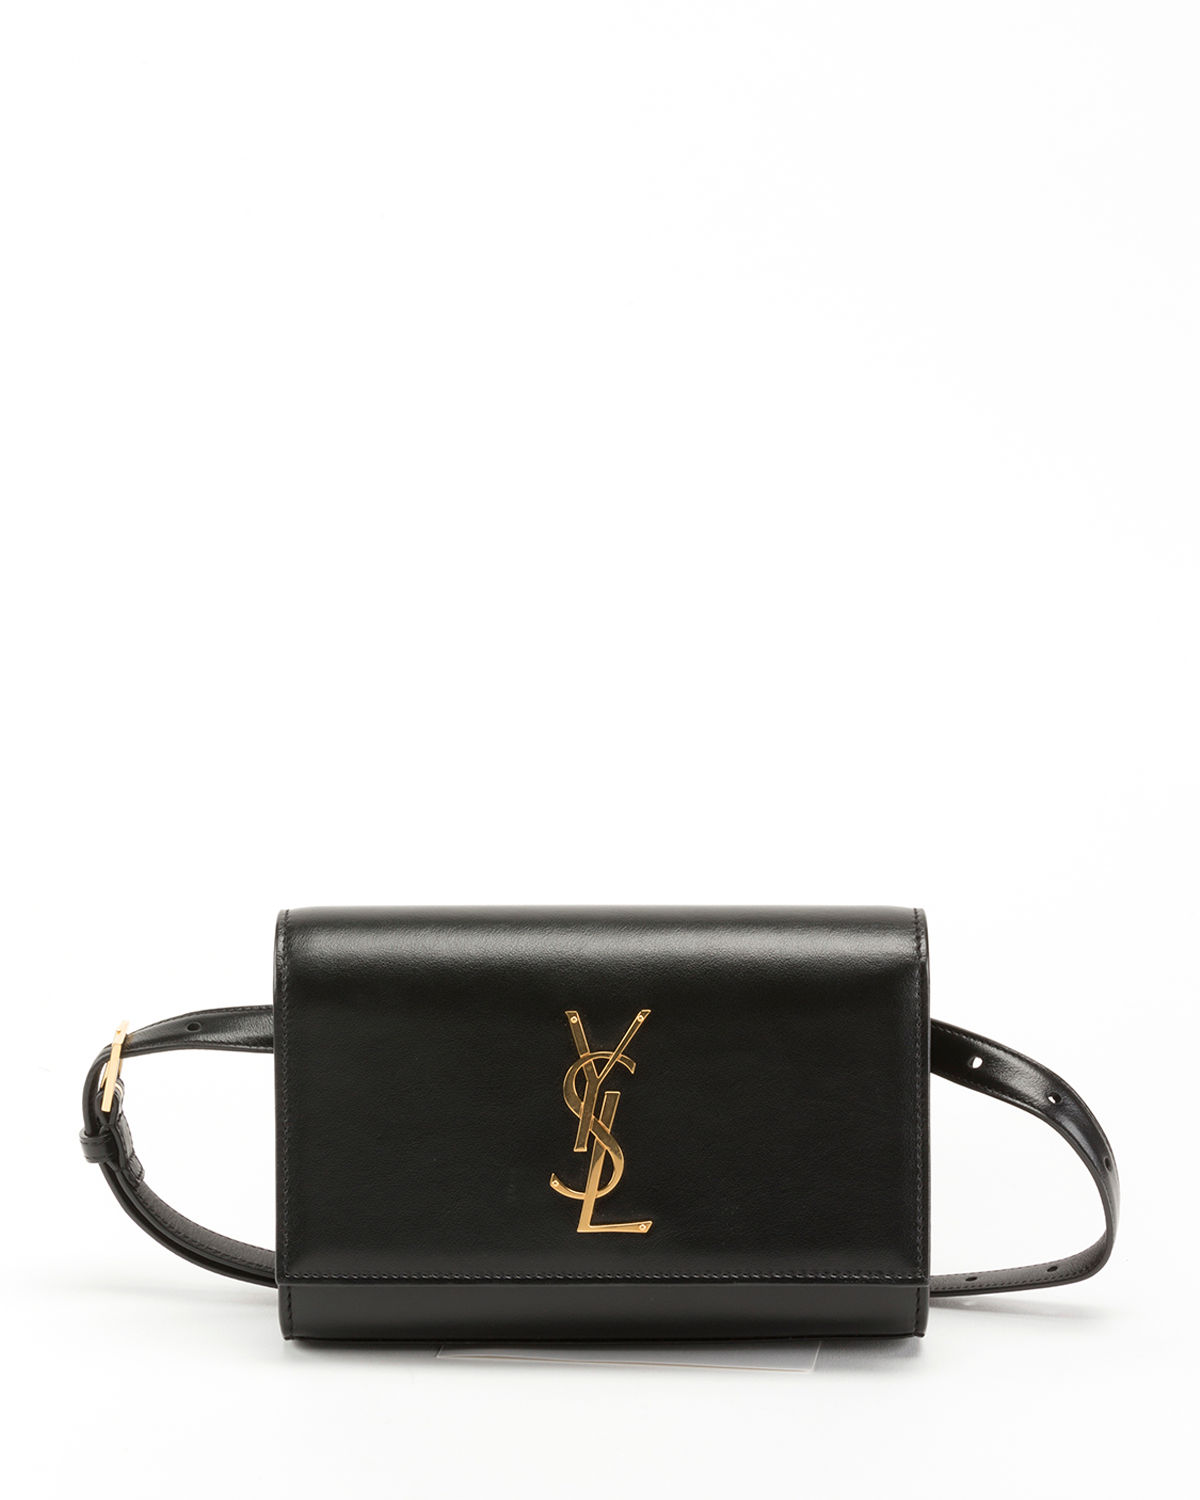 Saint Laurent Kate Monogram YSL Leather Belt Bag  55ff7f81799f5